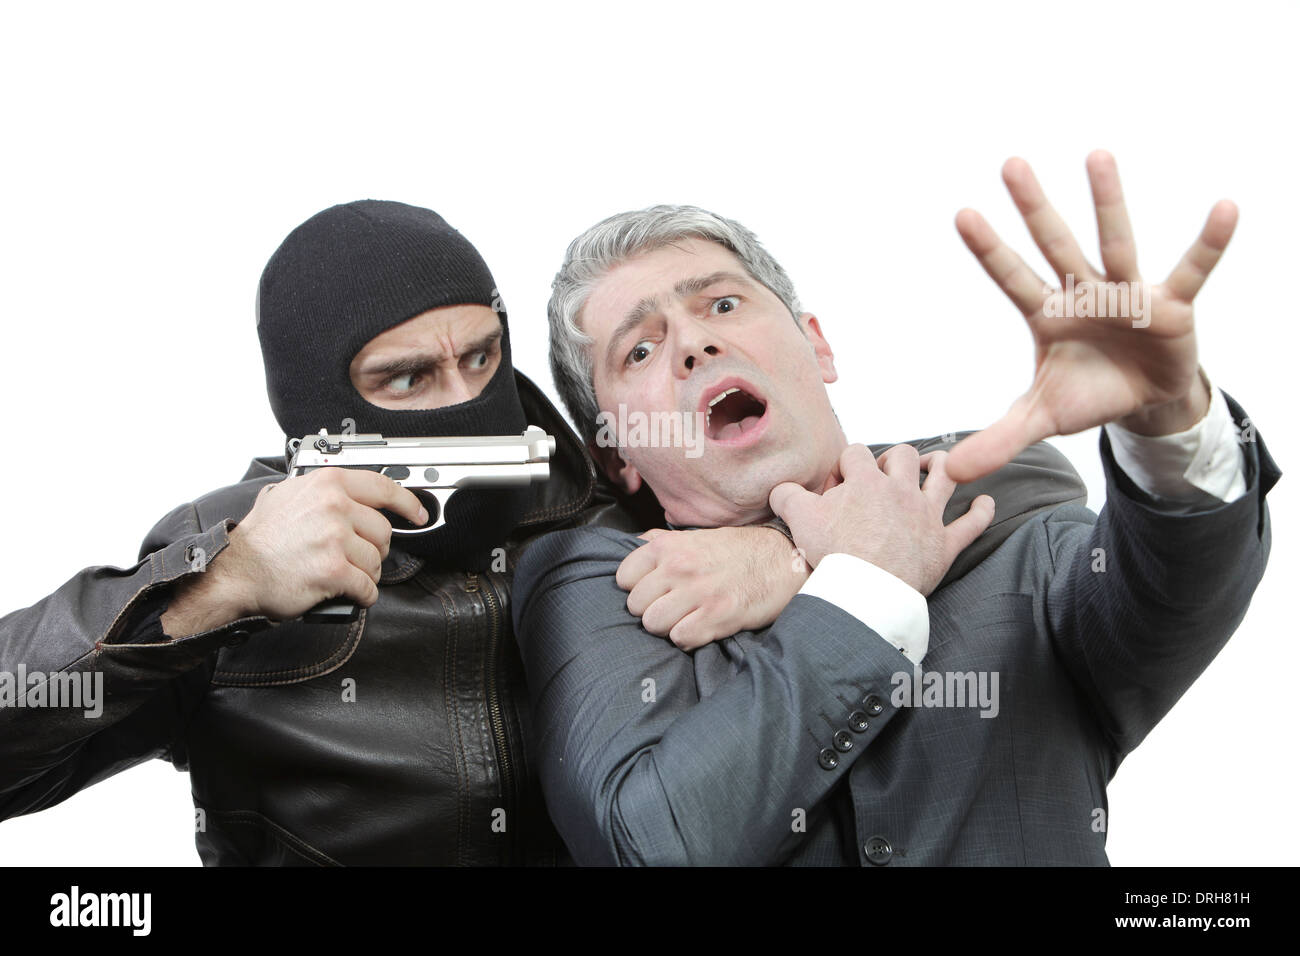 Kidnapper threatening a businessman with a gun... - Stock Image